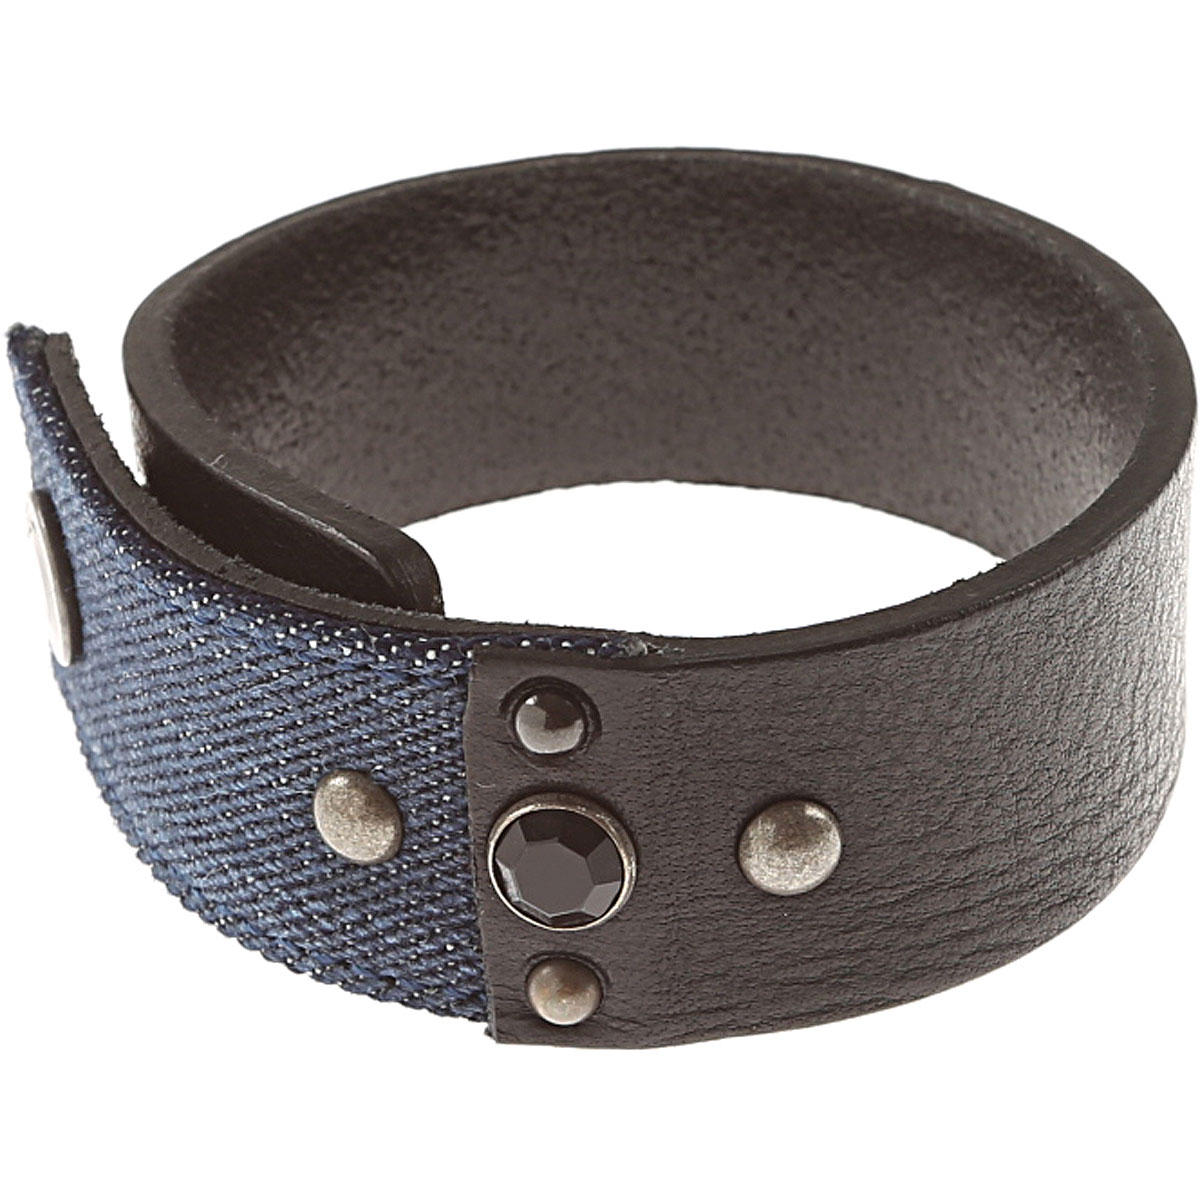 Diesel Bracelet for Men On Sale in Outlet, Black, Cow Leather, 2019